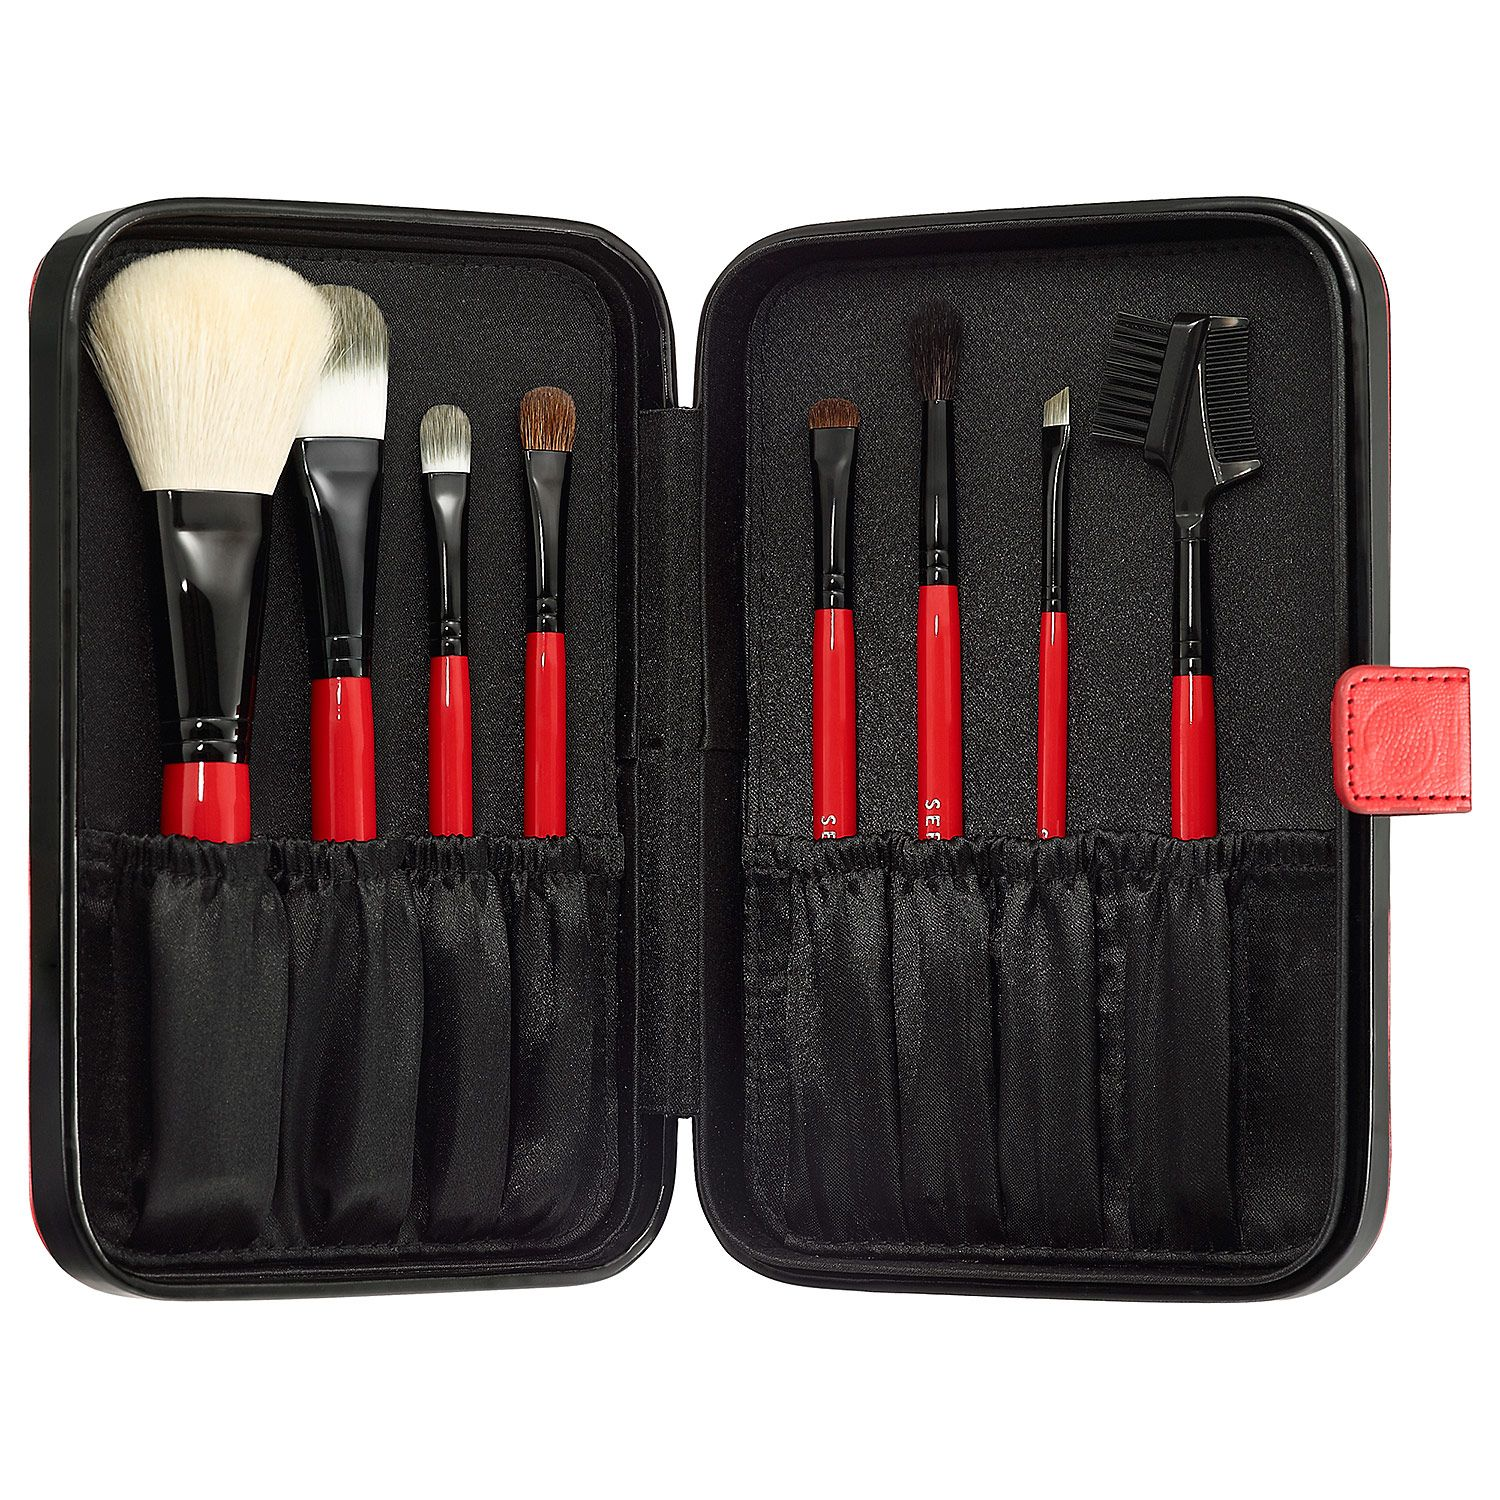 SEPHORA COLLECTION 15th Anniversary Ultimate Travel Brush